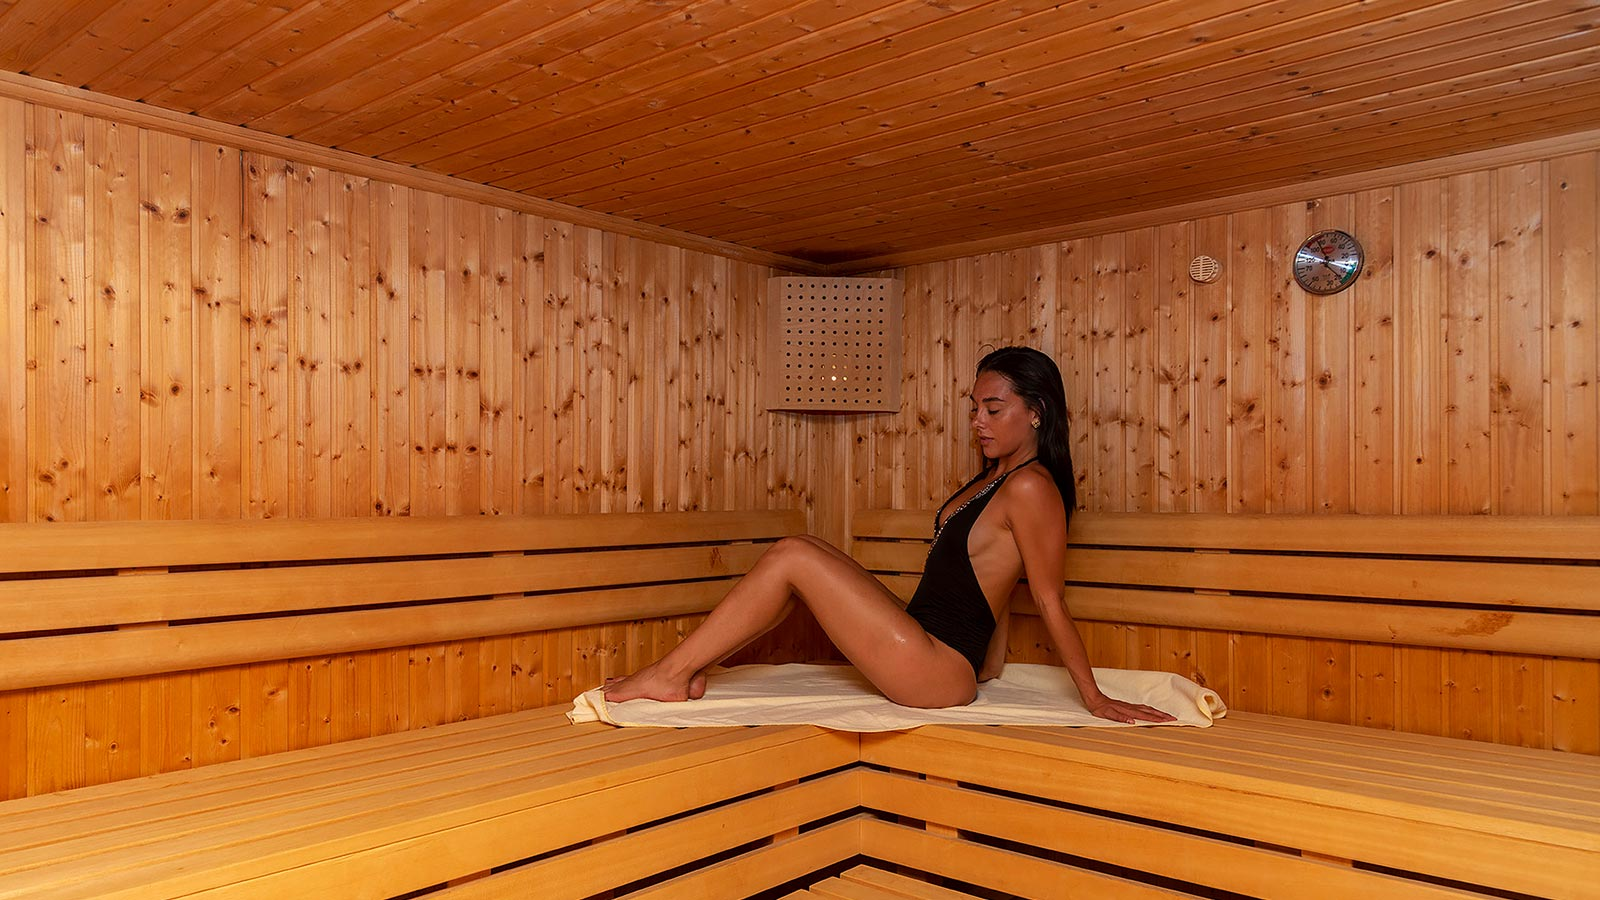 A girl relaxes in the Finnish sauna of our accommodation in South Tyrol